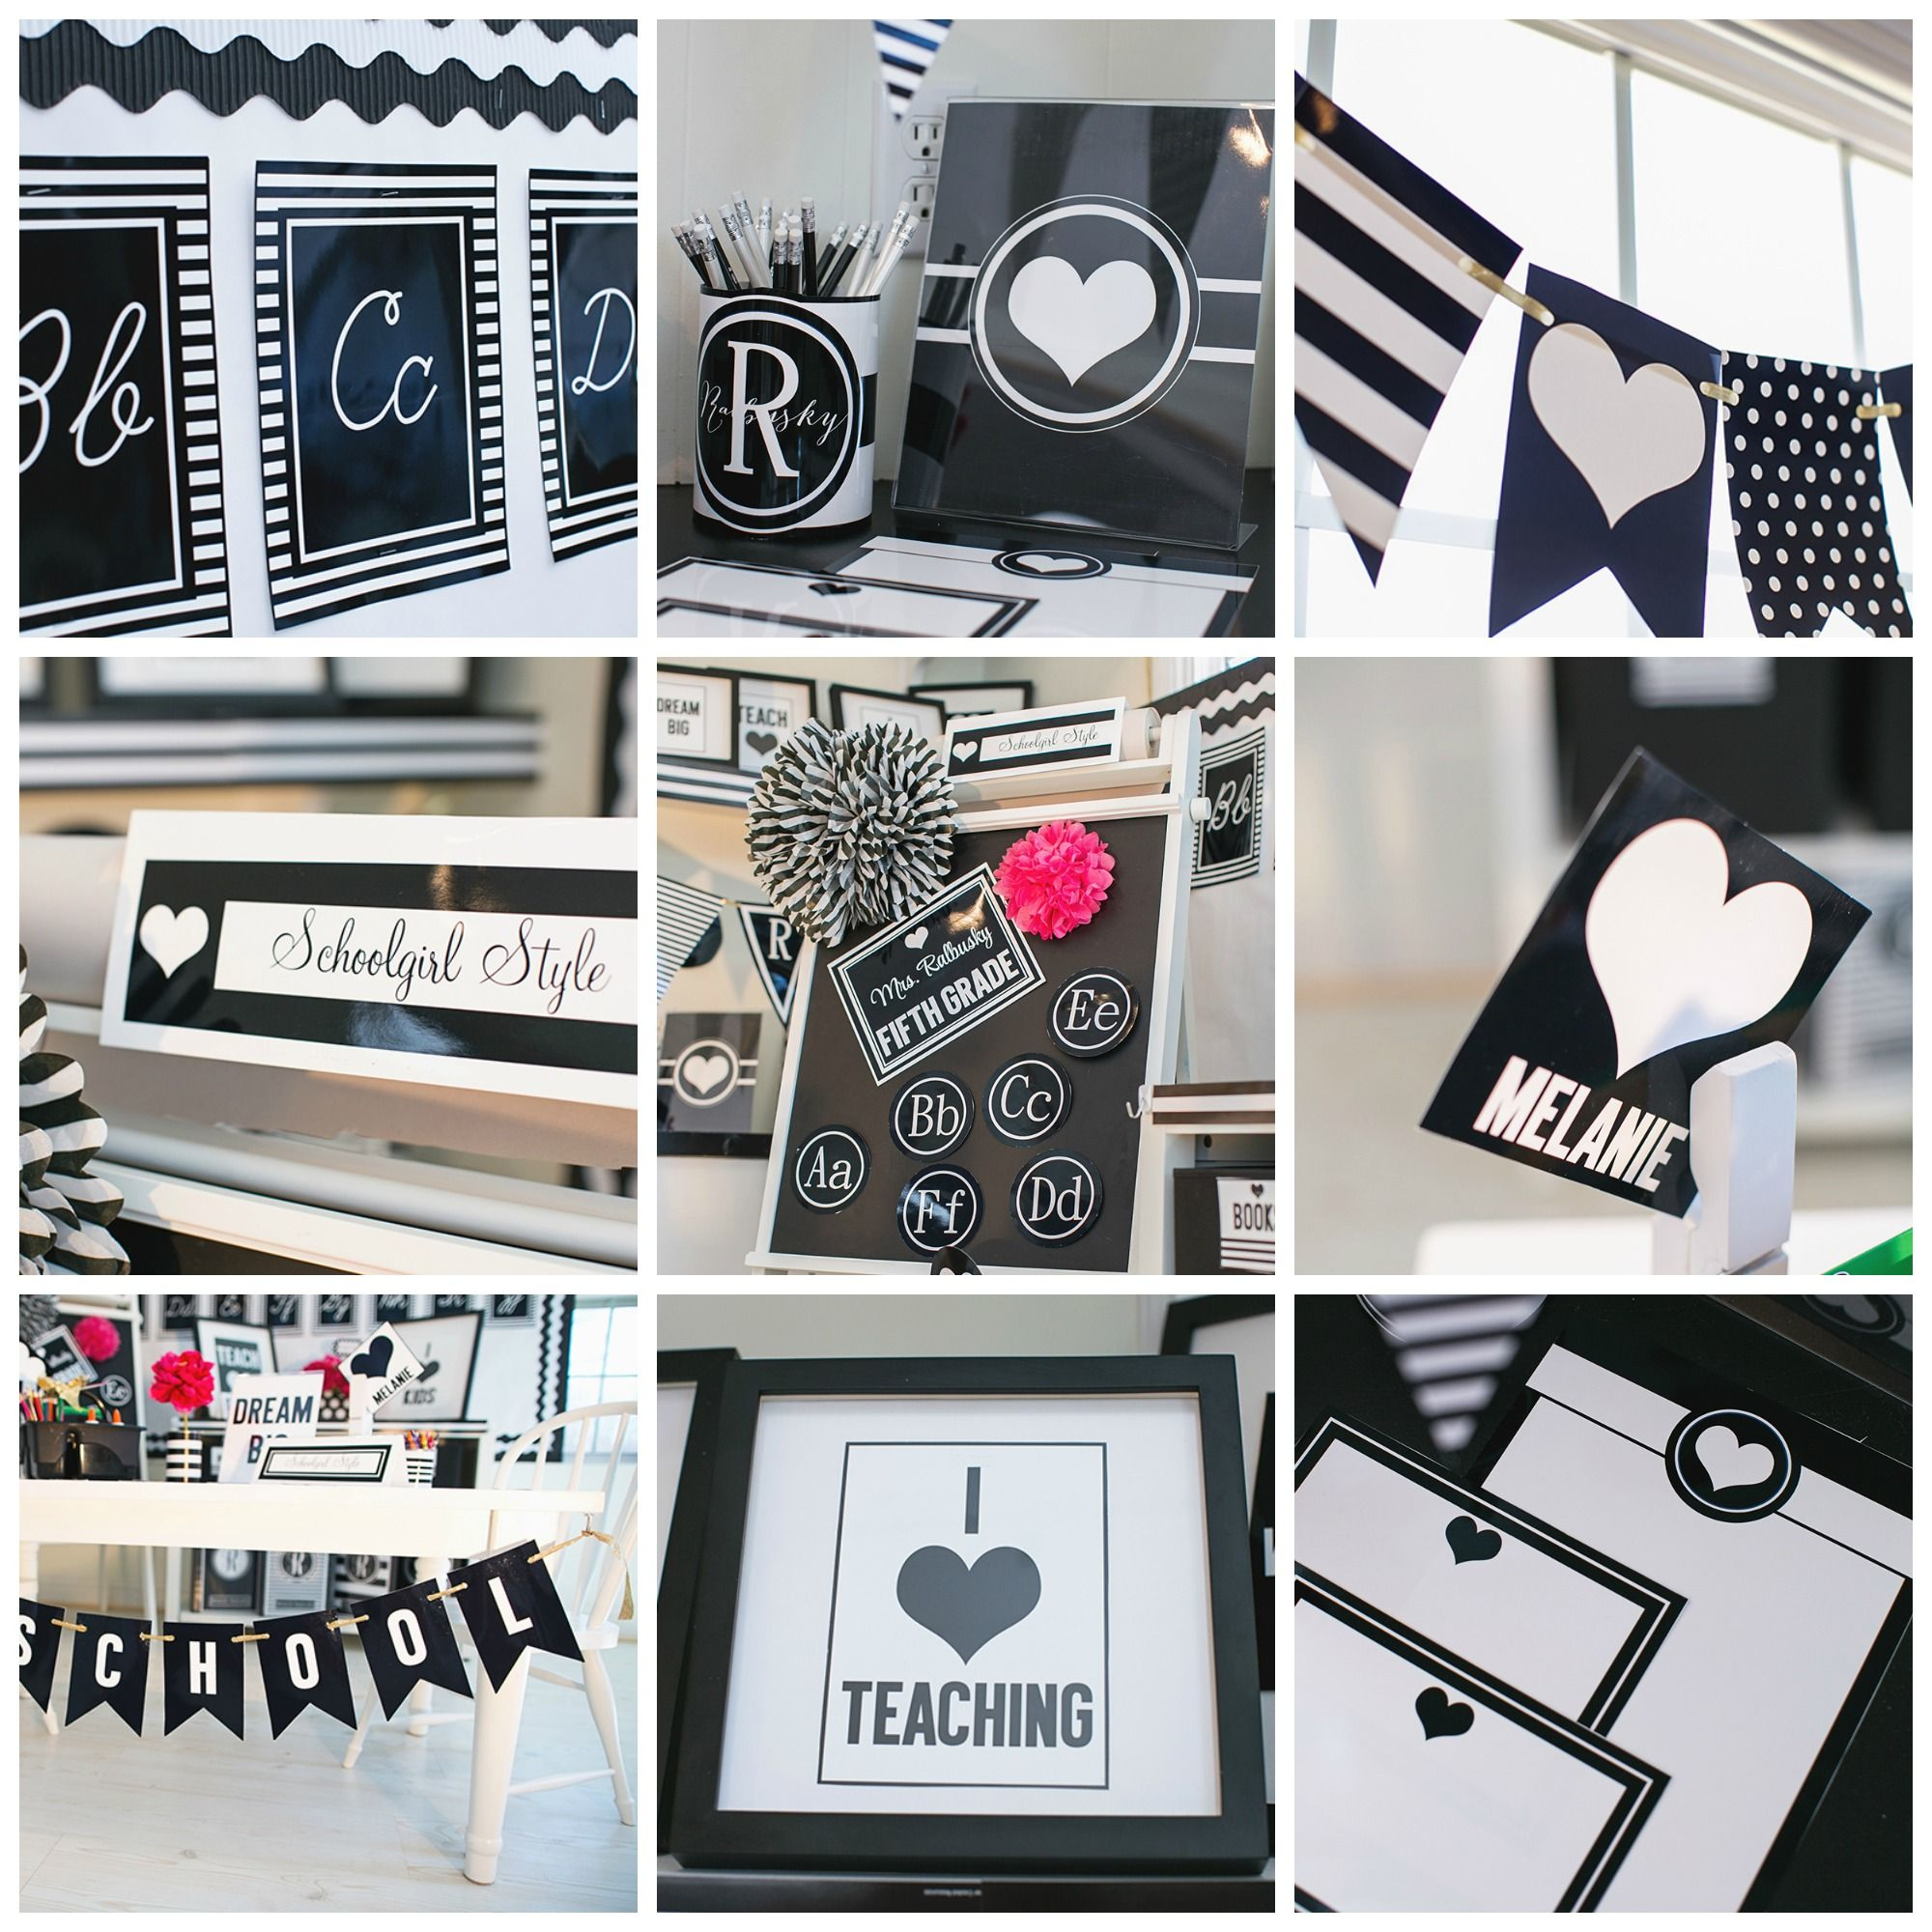 Classroom Decor Black And White : Black and white classroom theme decor by schoolgirl style